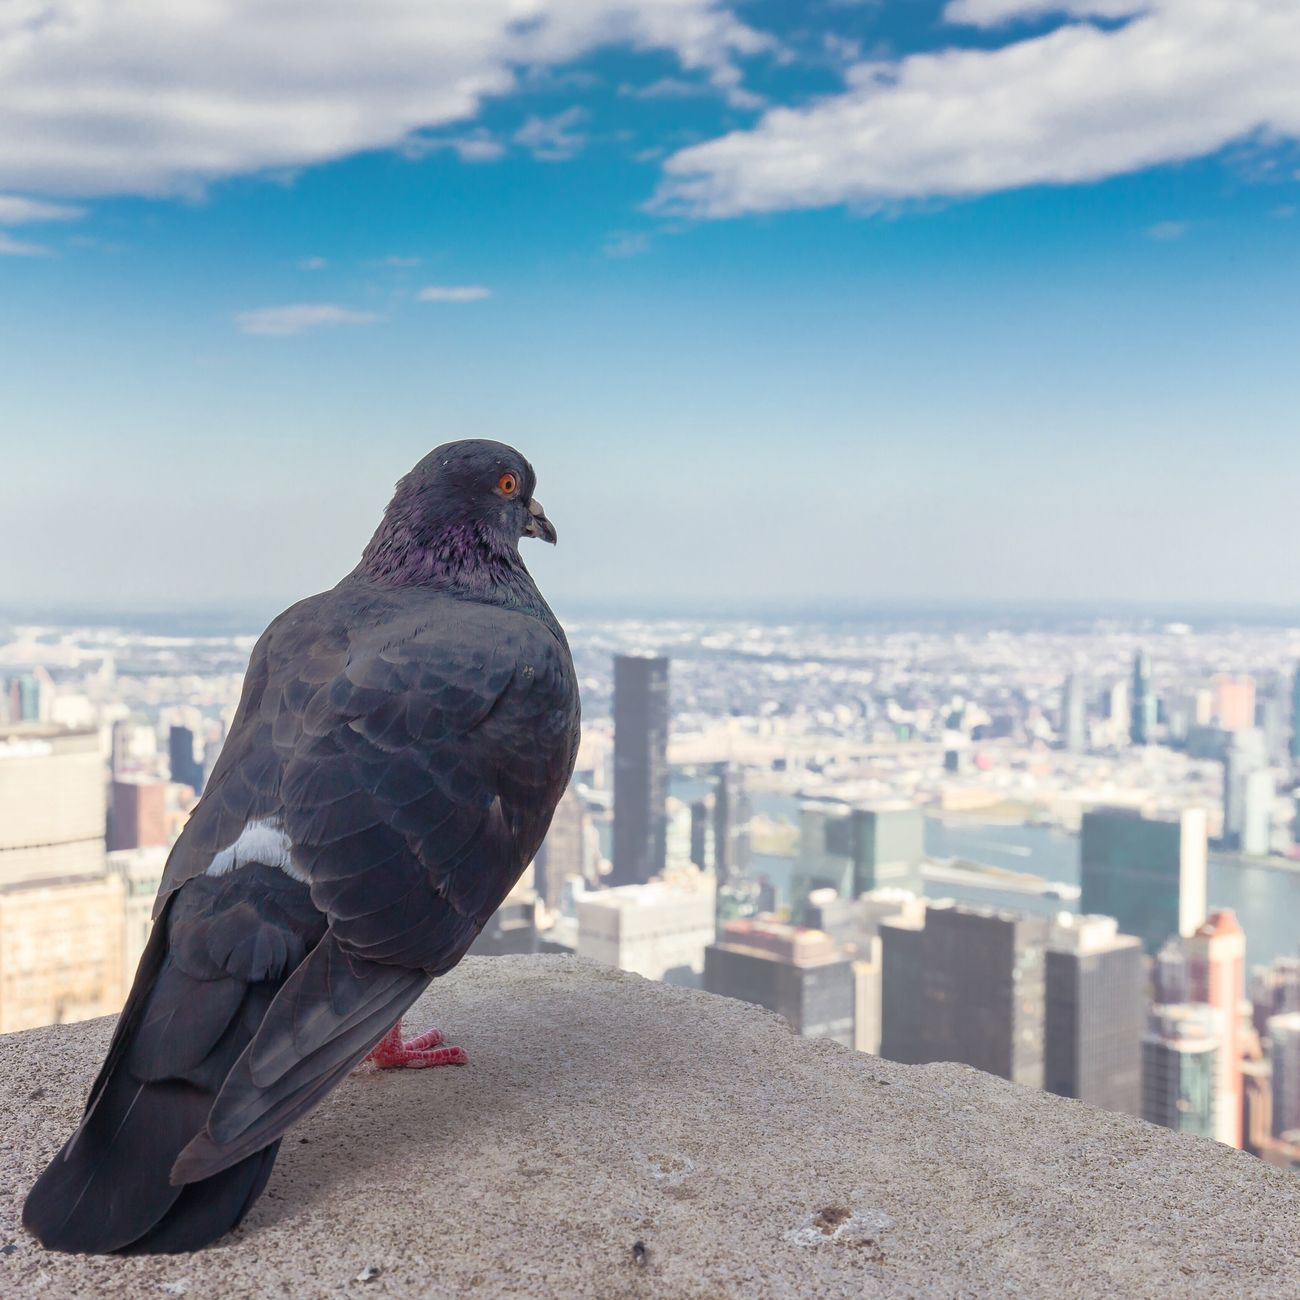 Rooftop Meditation | shot in New York City Bird Animal Themes Sky One Animal Building Exterior Architecture Built Structure City Day Sea Animals In The Wild Outdoors Cityscape No People Nature Cloud - Sky Perching Retaining Wall Adapted To The City